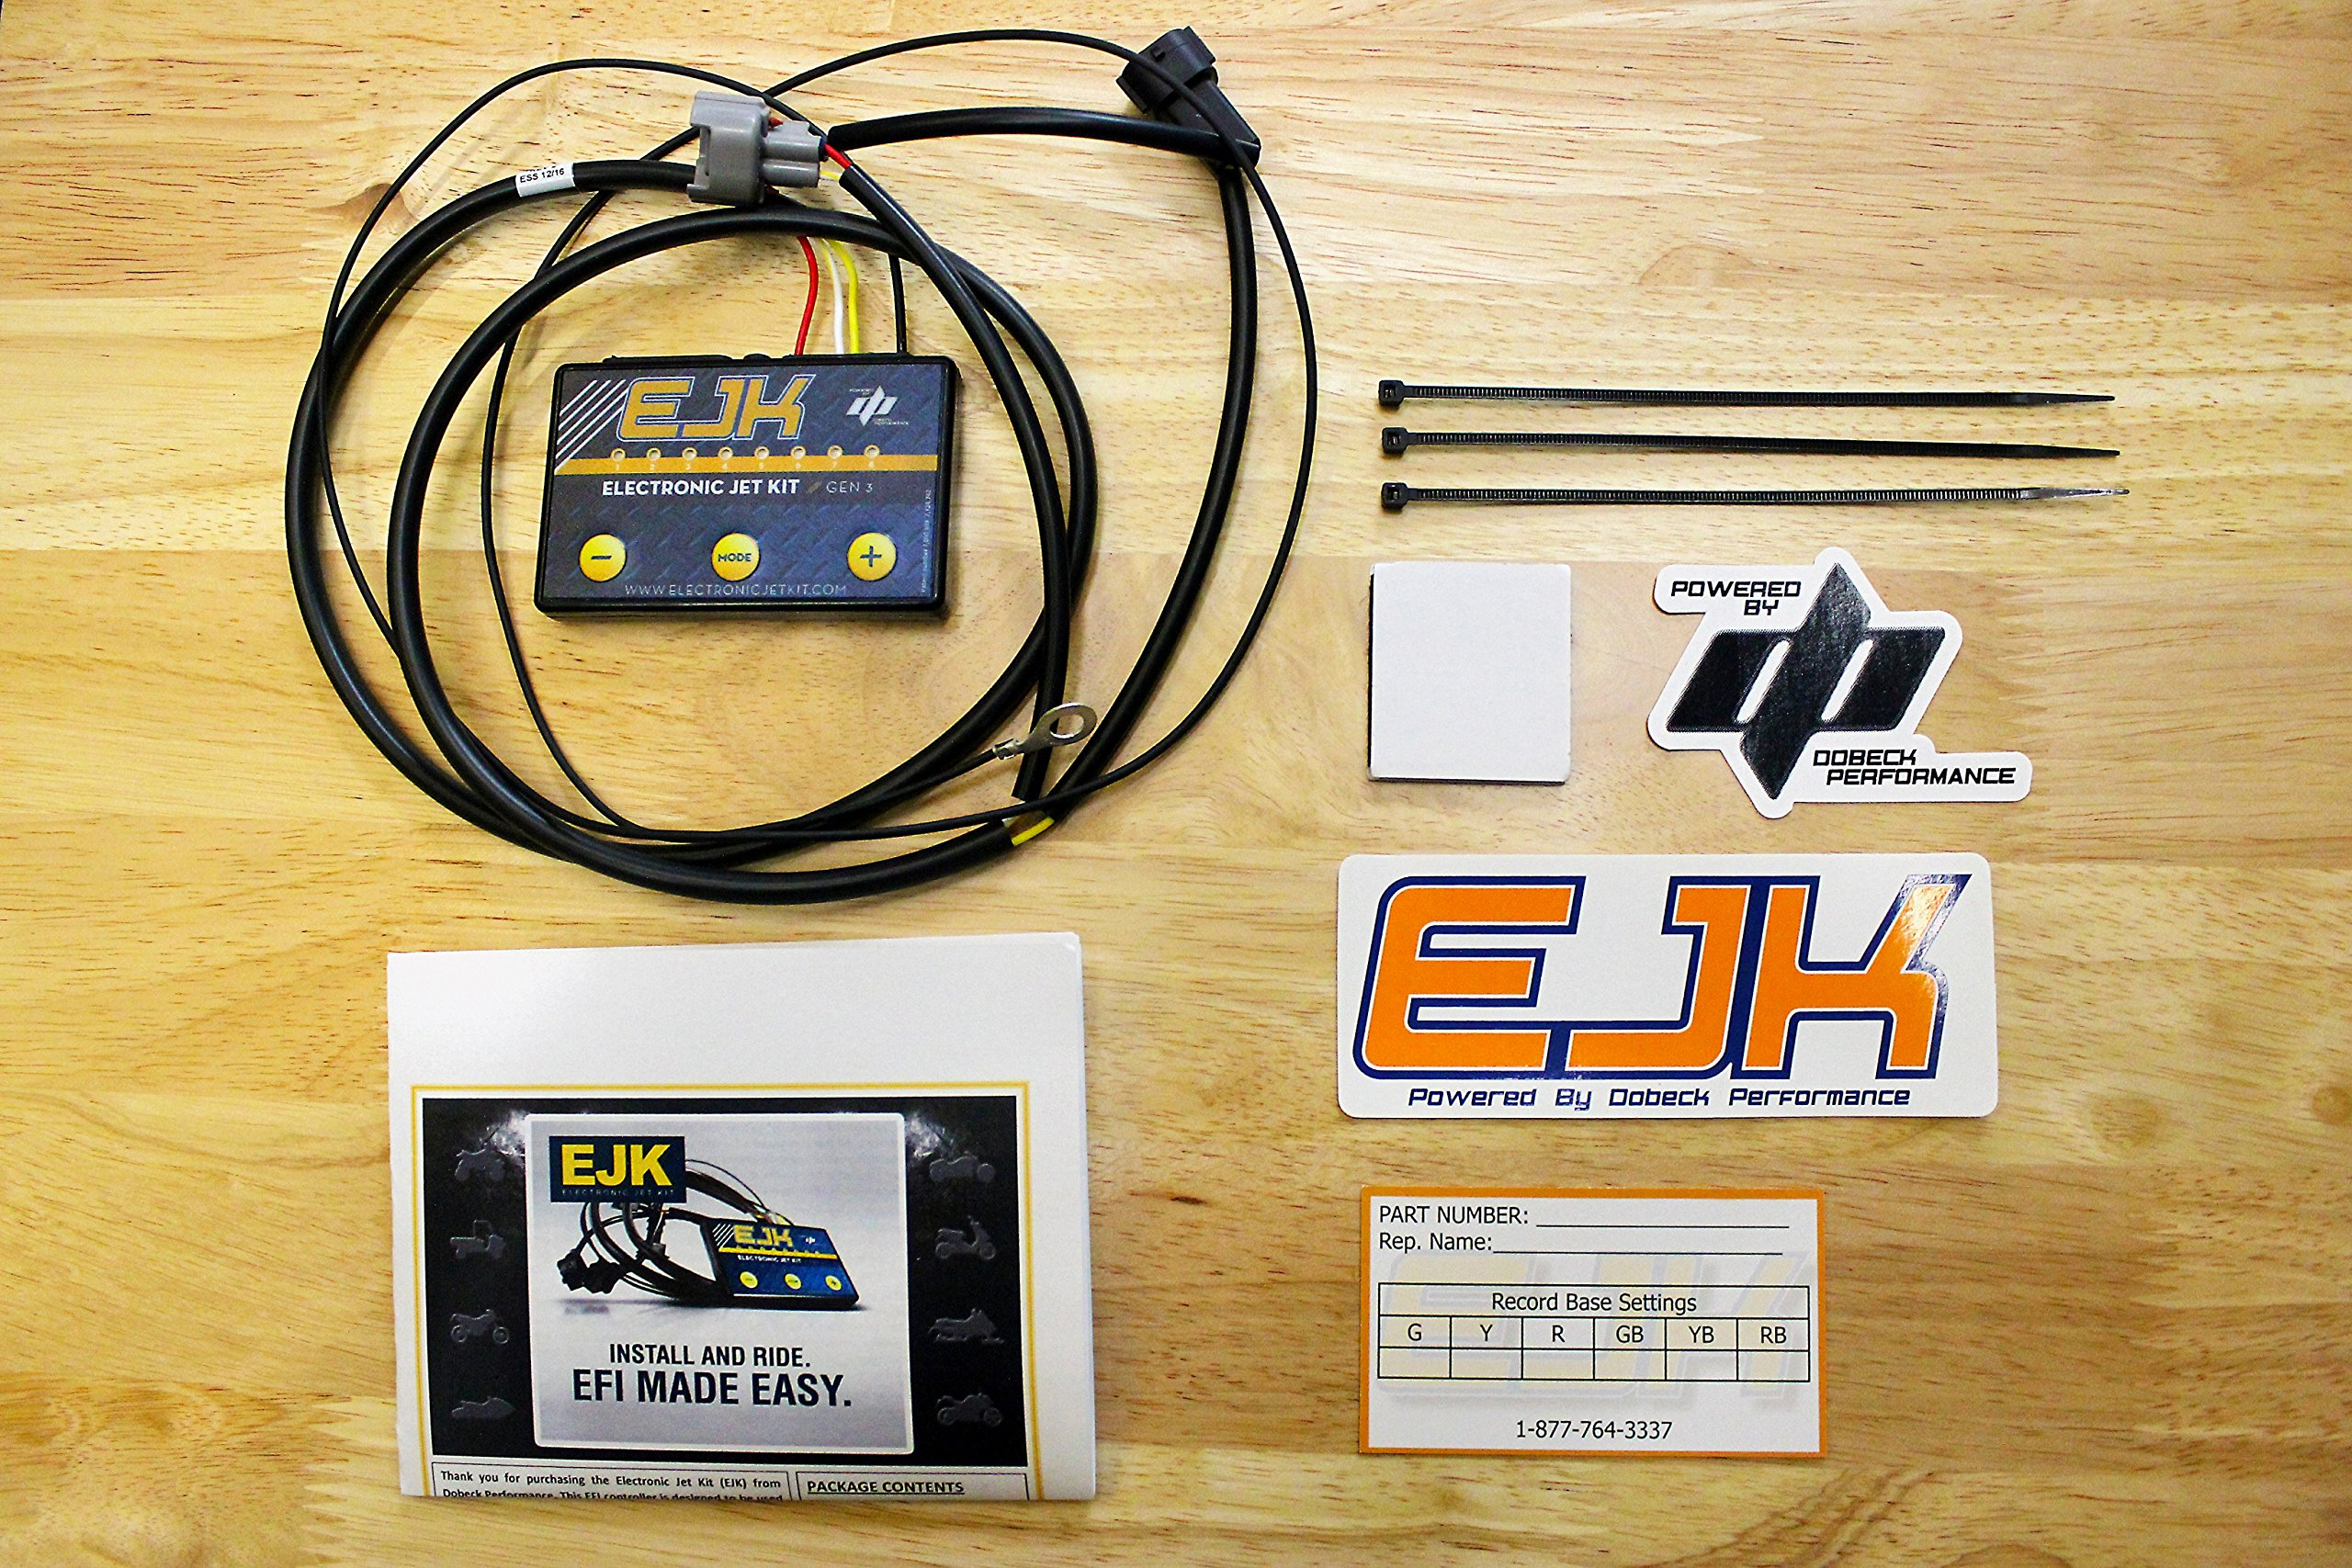 Dobeck Performance Yamaha V-Star Yamaha Bolt Fuel Injection Programmer EJK 9120291 by Dobeck Performance